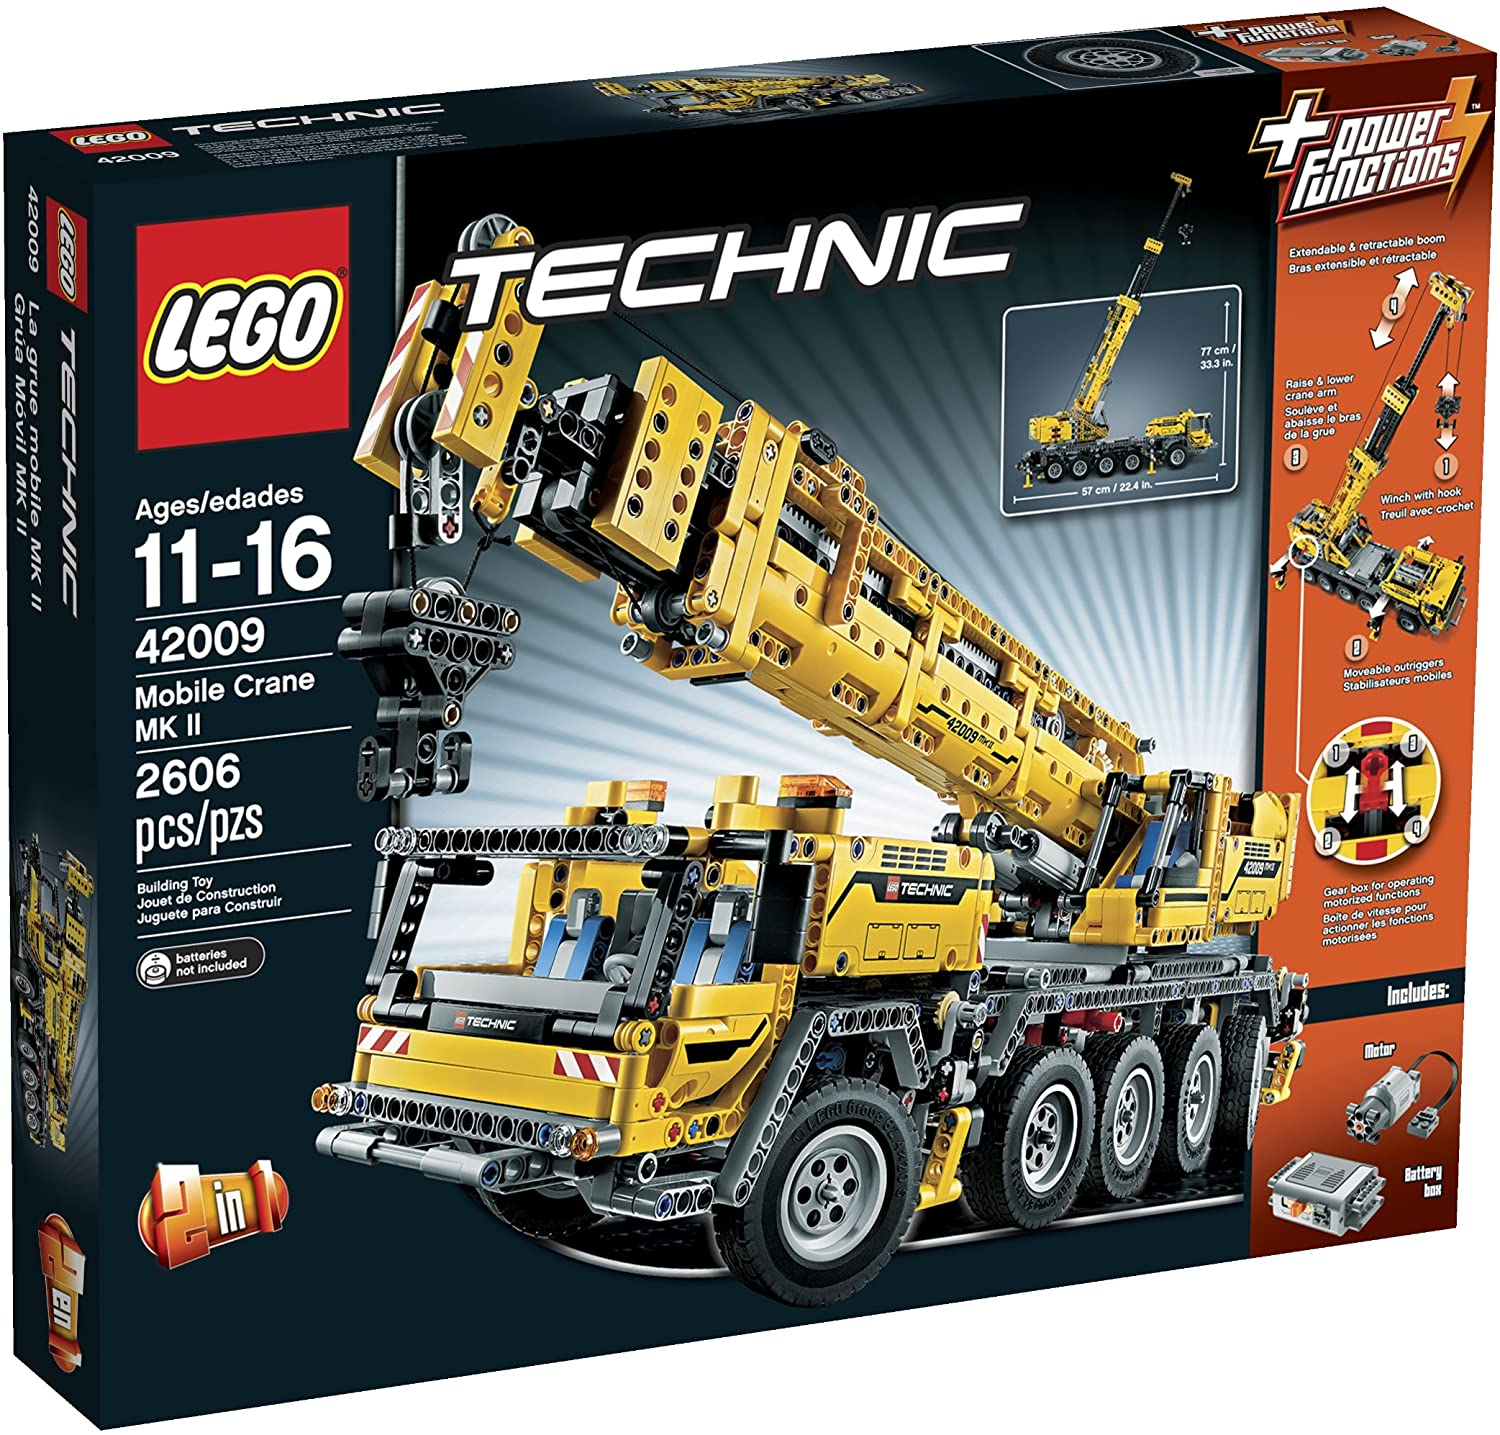 Top 7 Best LEGO Crane Sets Reviews in 2020 2